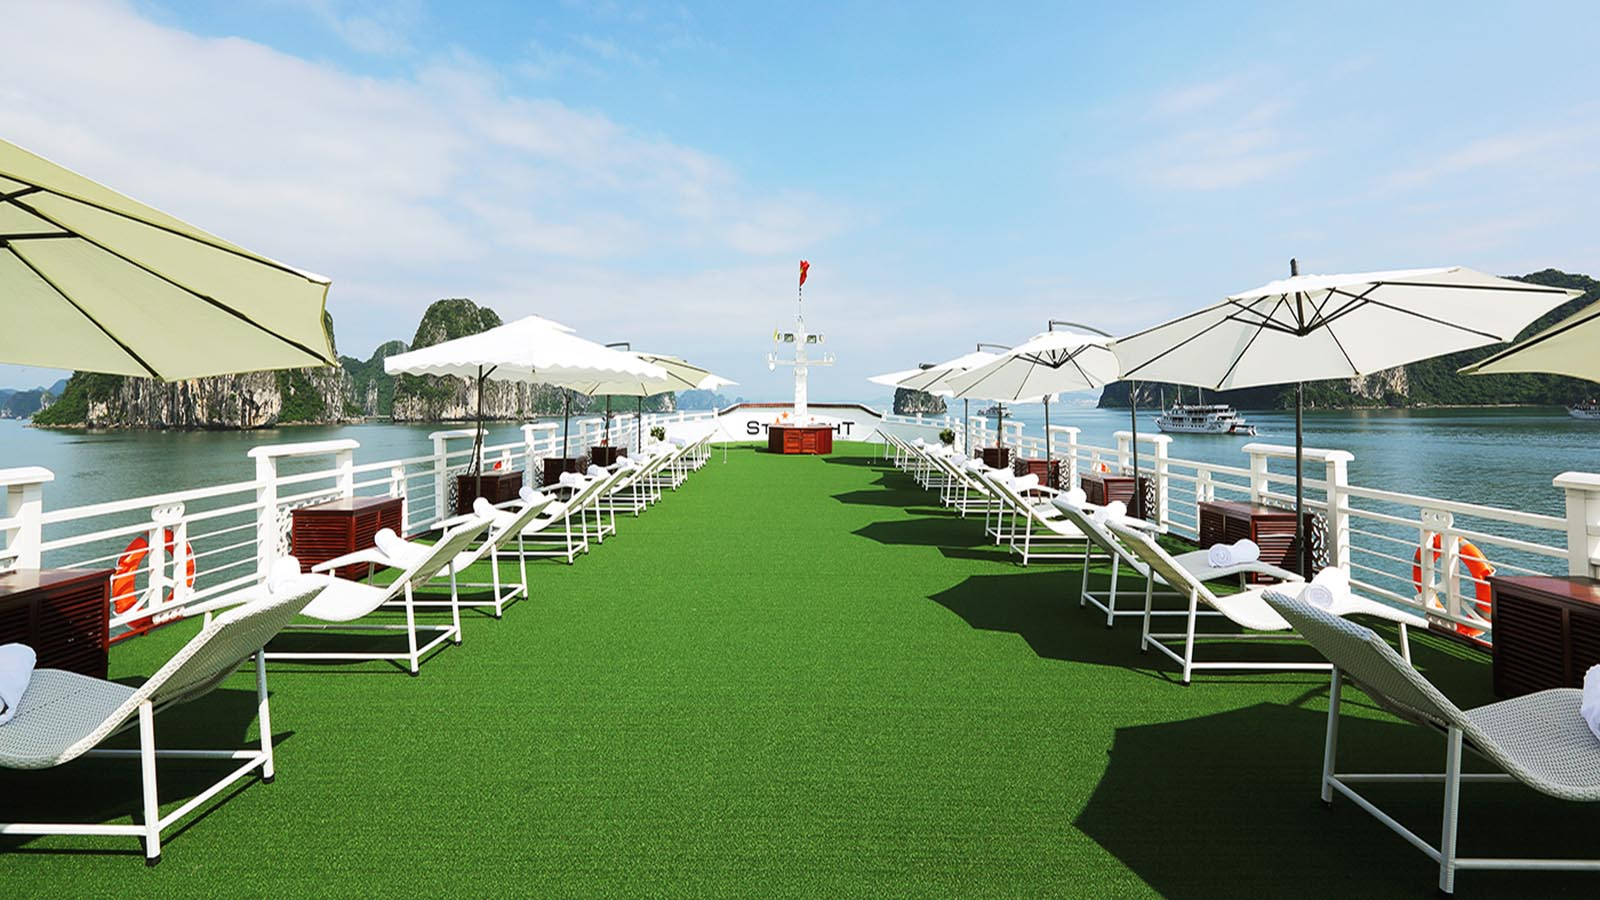 A small simulated golf course on board